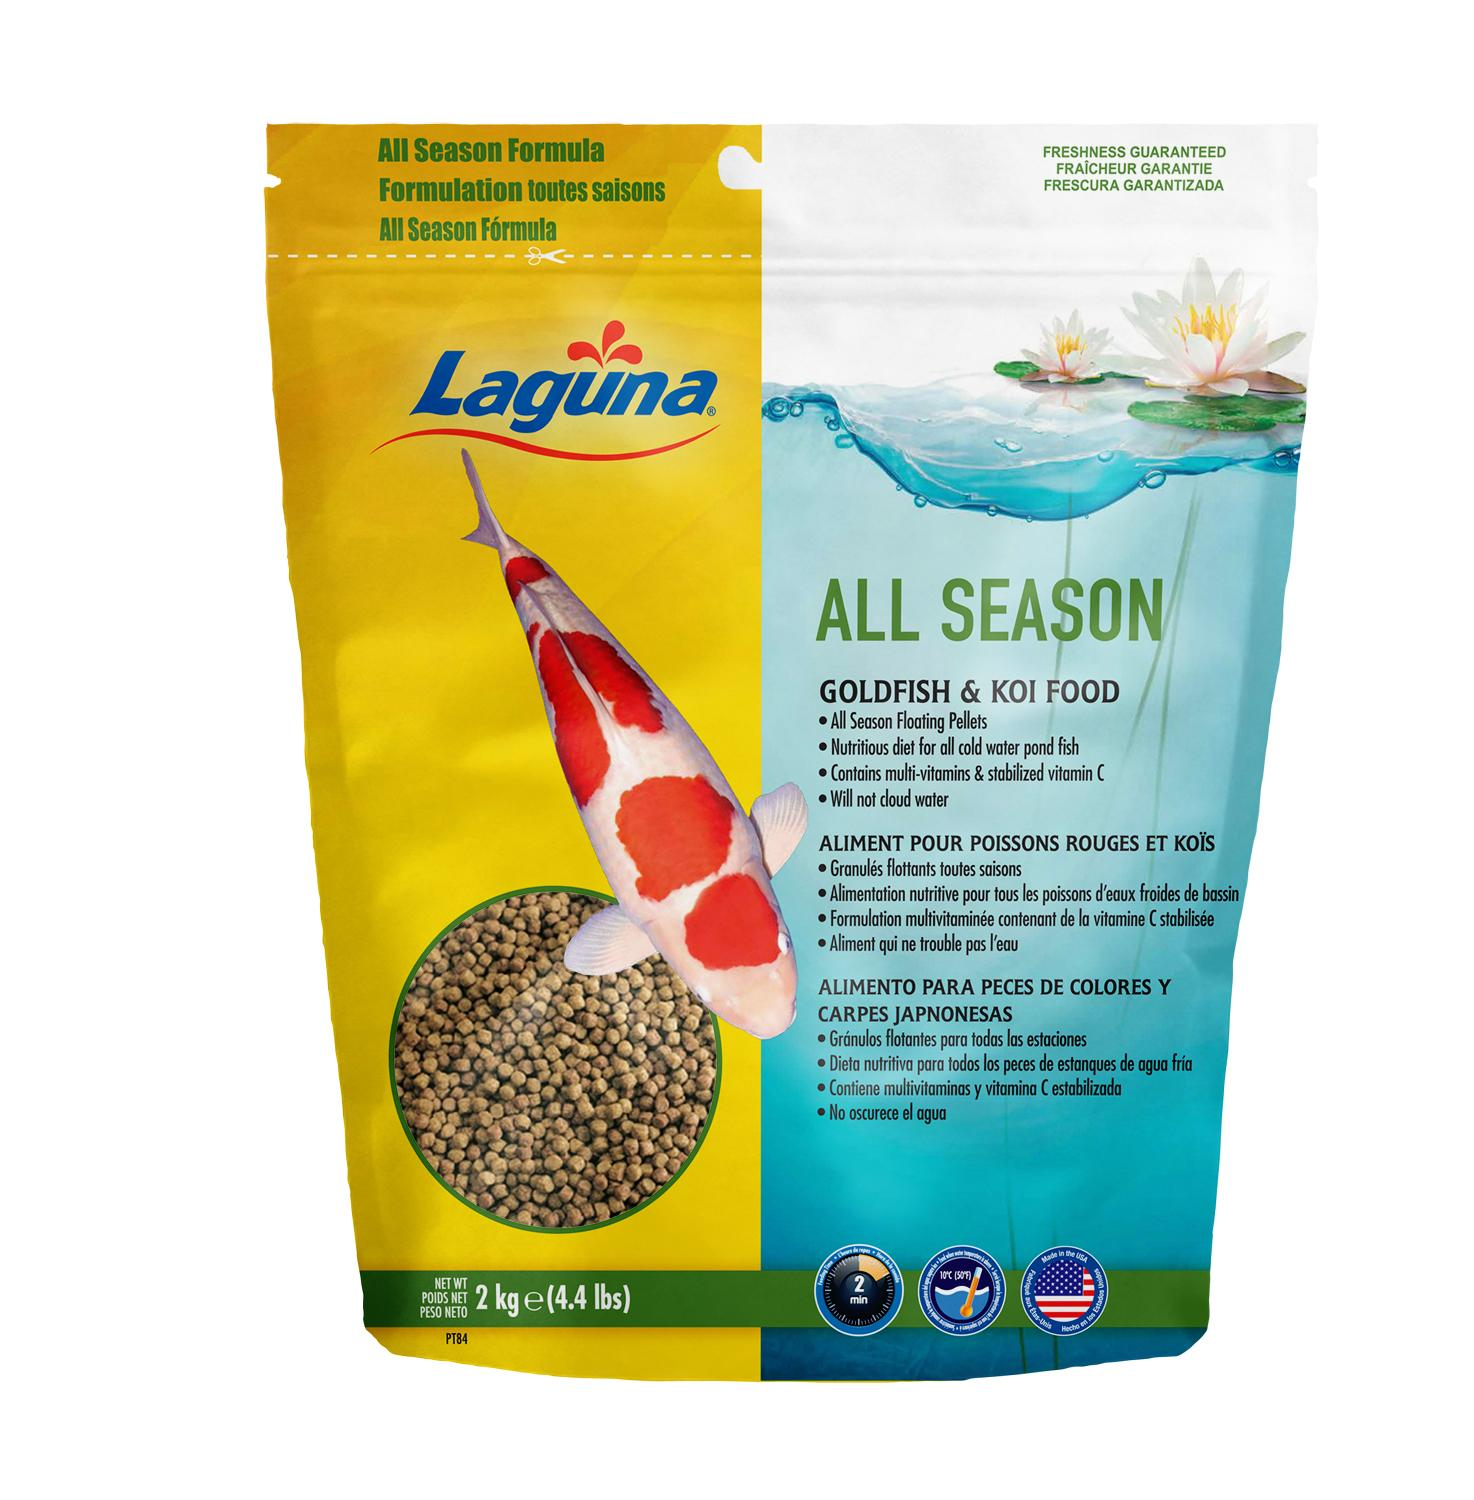 Laguna All Season floating fish food contains a balanced nutritional formula for Goldfish, Koi and cold water pond fish. This blend of vitamins, ...